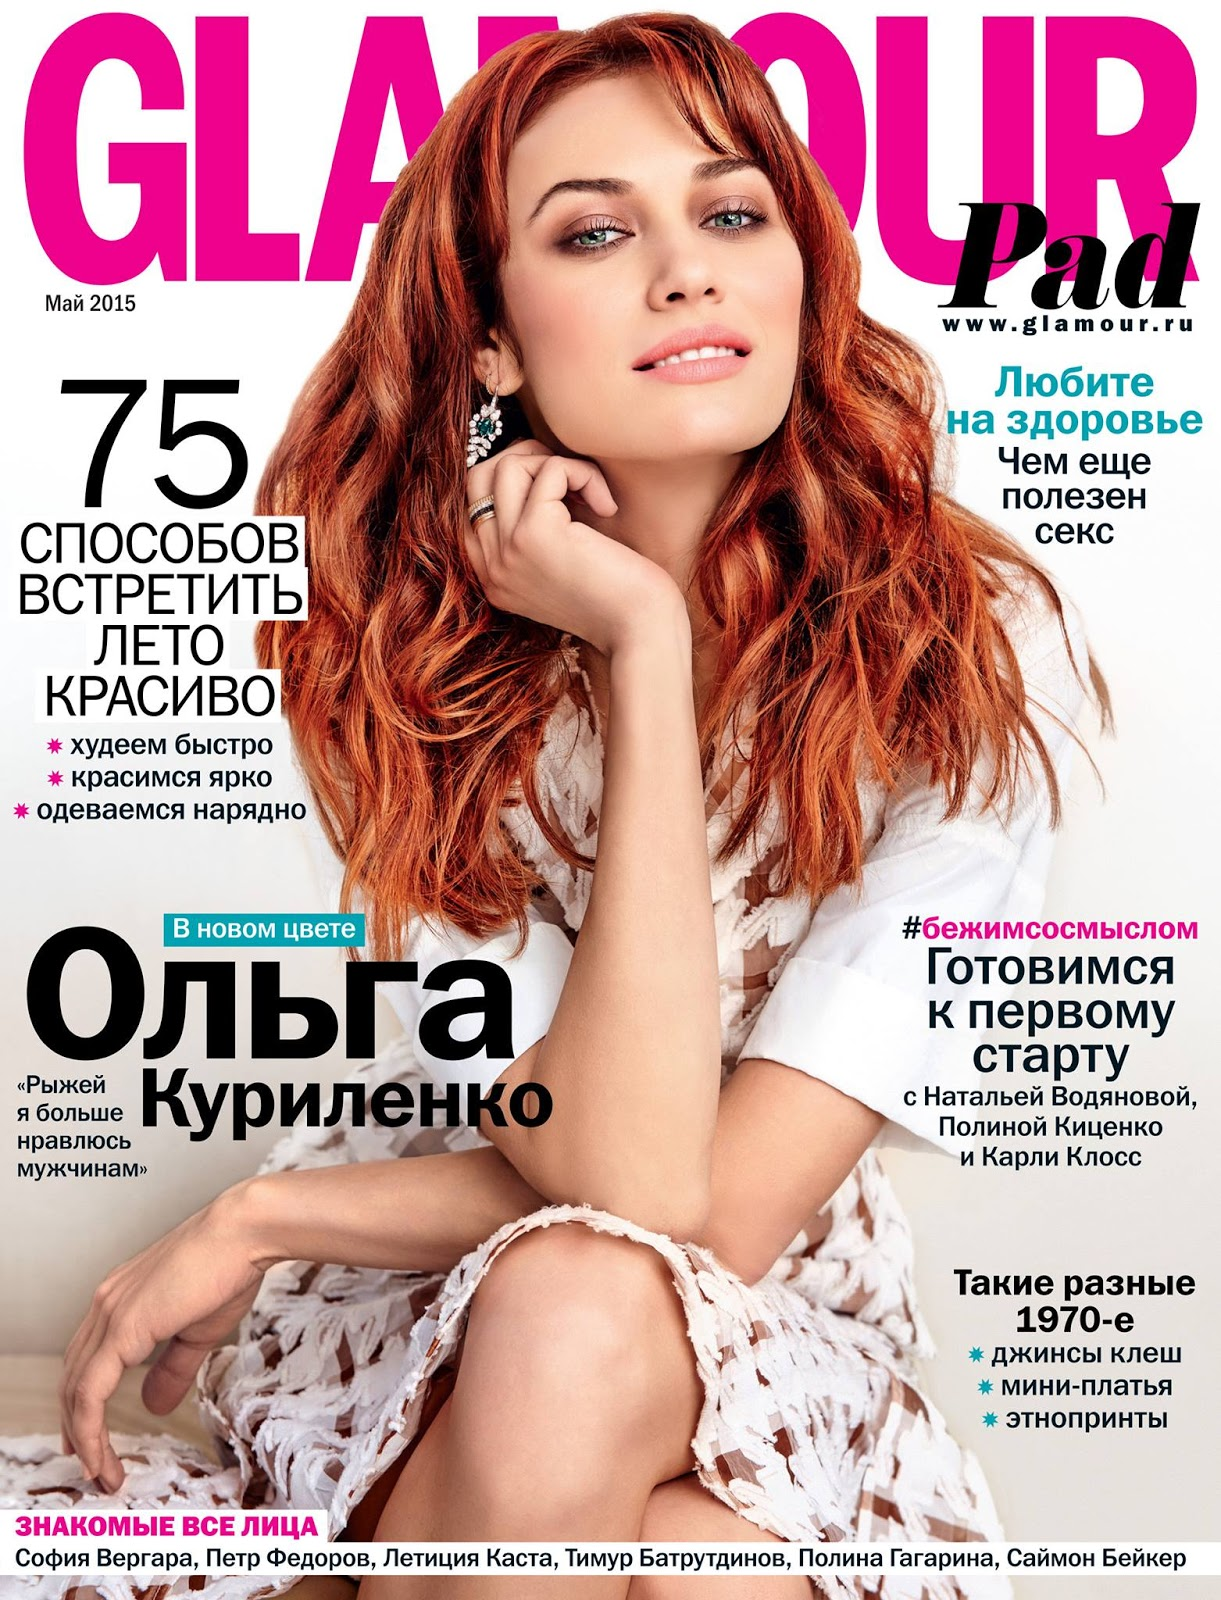 Actress, Fashion Model @ Olga Kurylenko by Laurence Laborie for Glamour Russia, May 2015